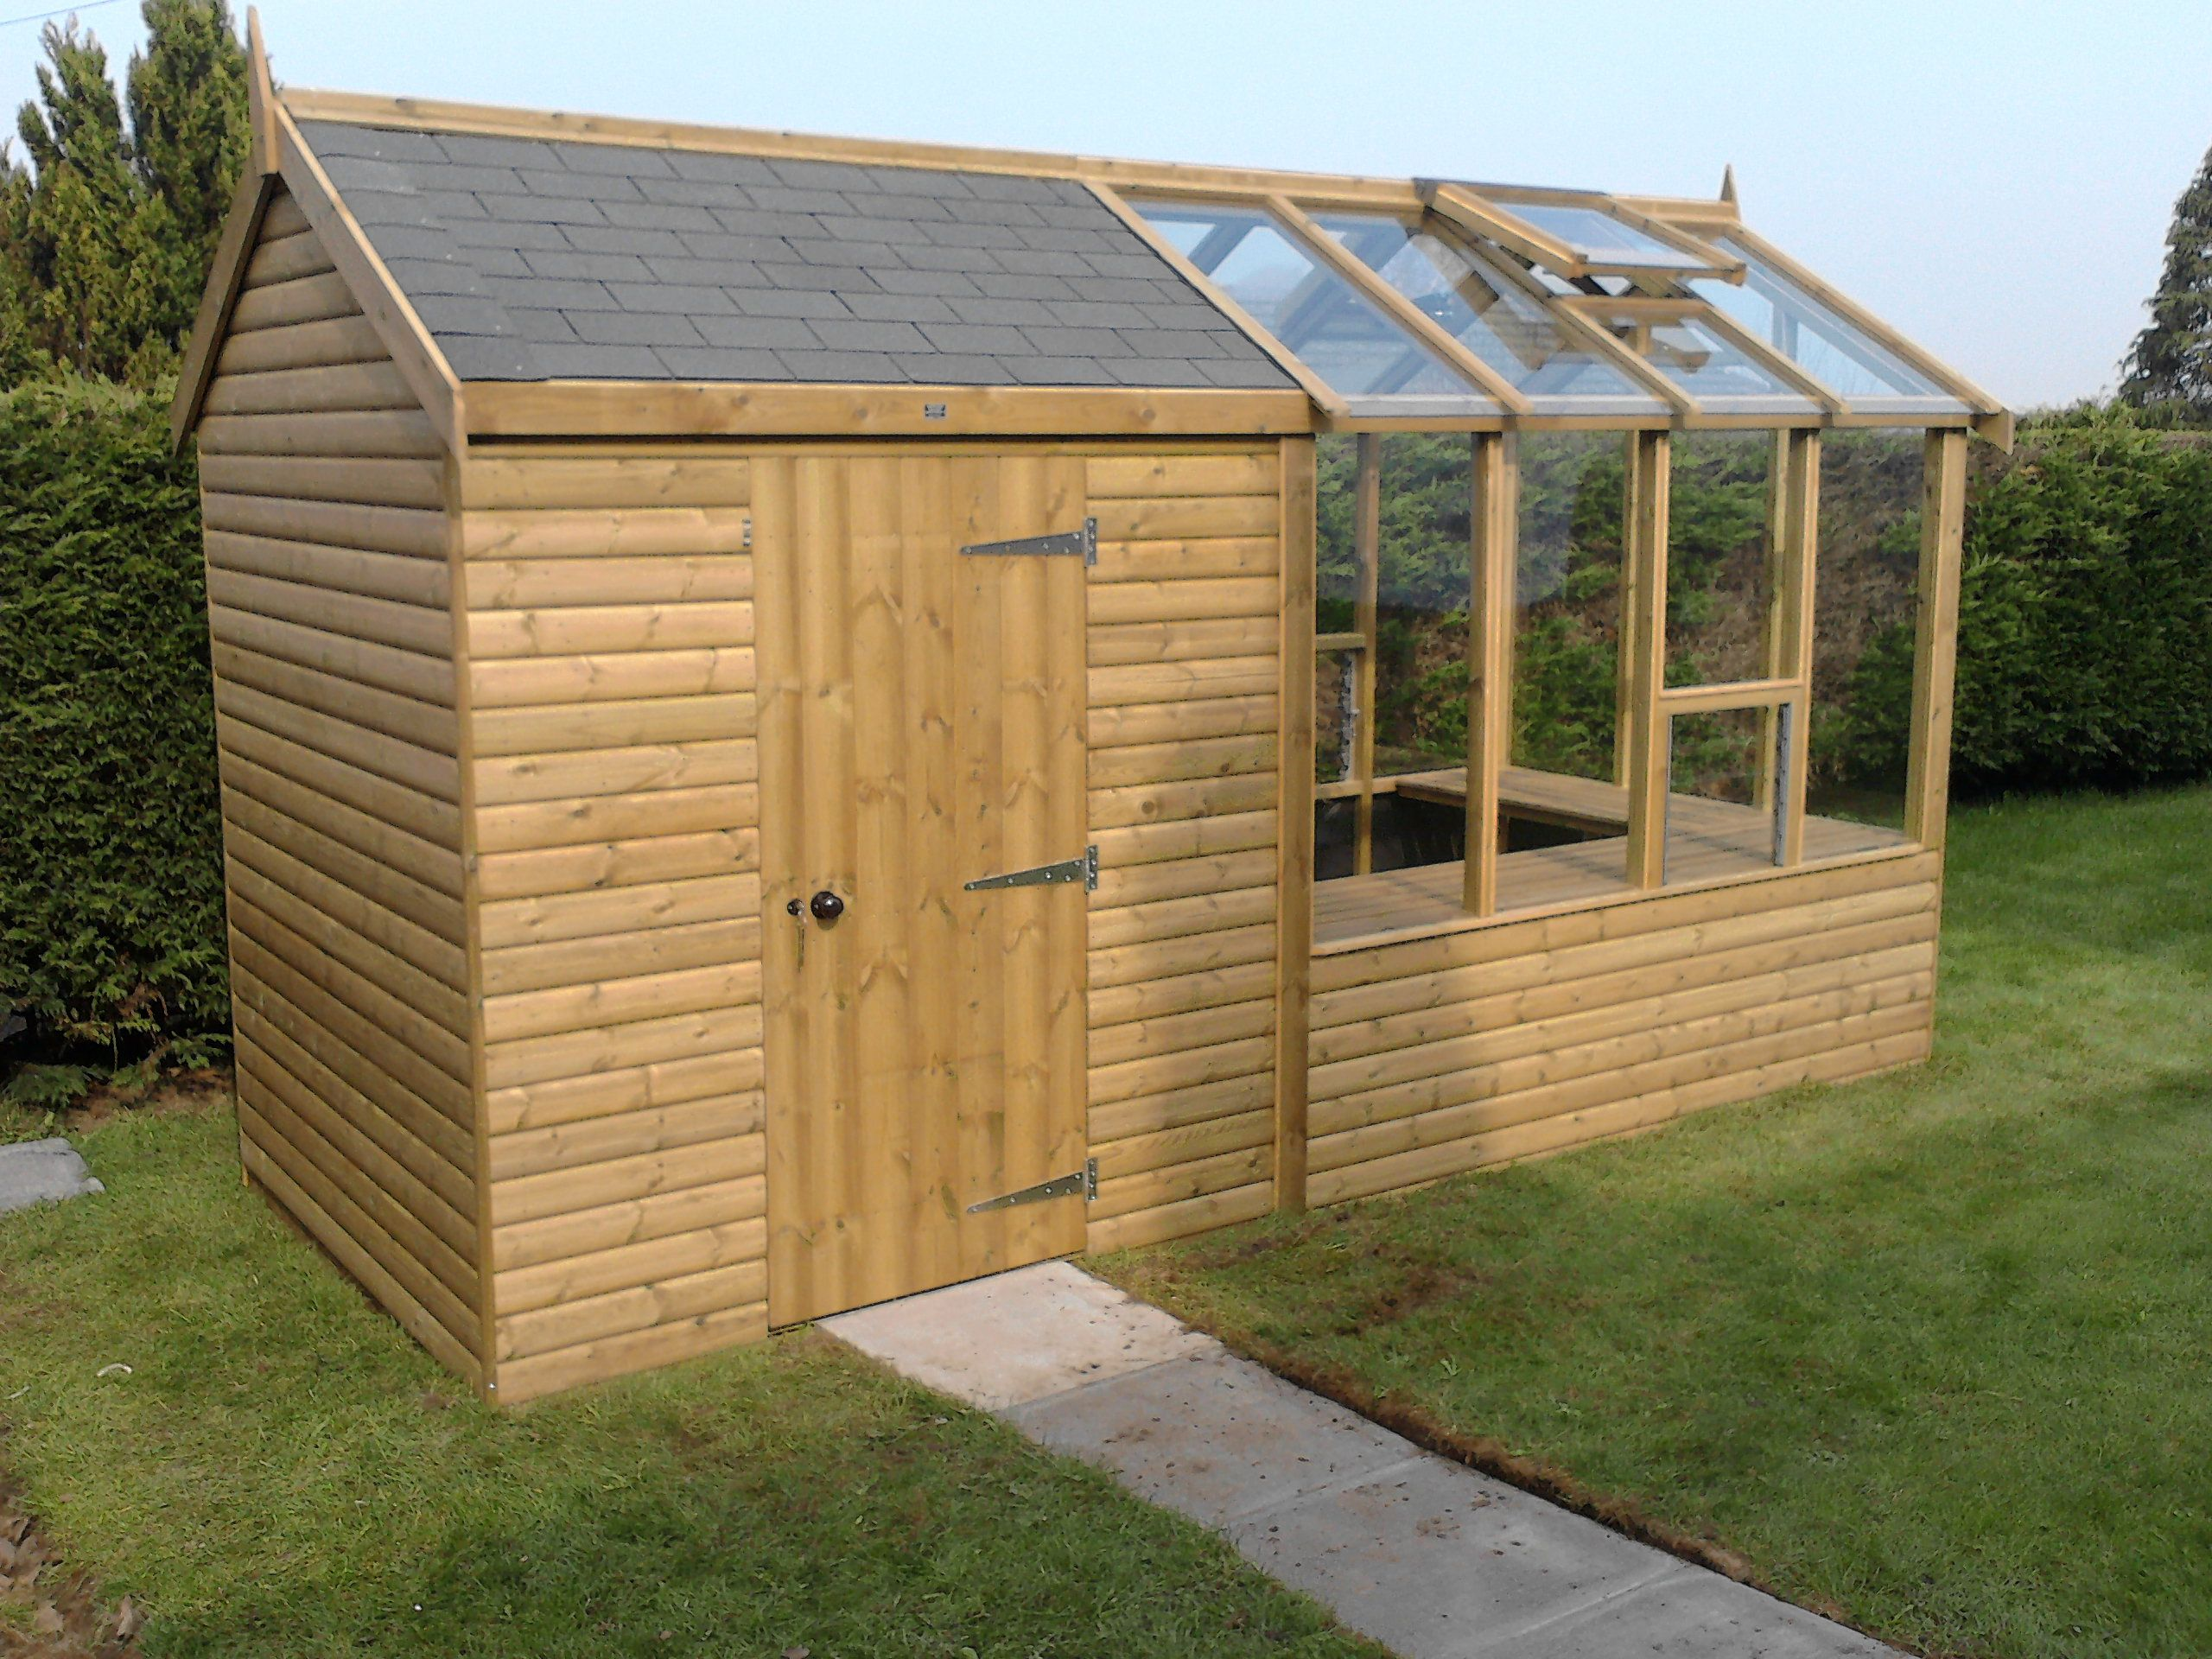 Storage Shed With Greenhouse Attached Keeps All Your Gardening Needs